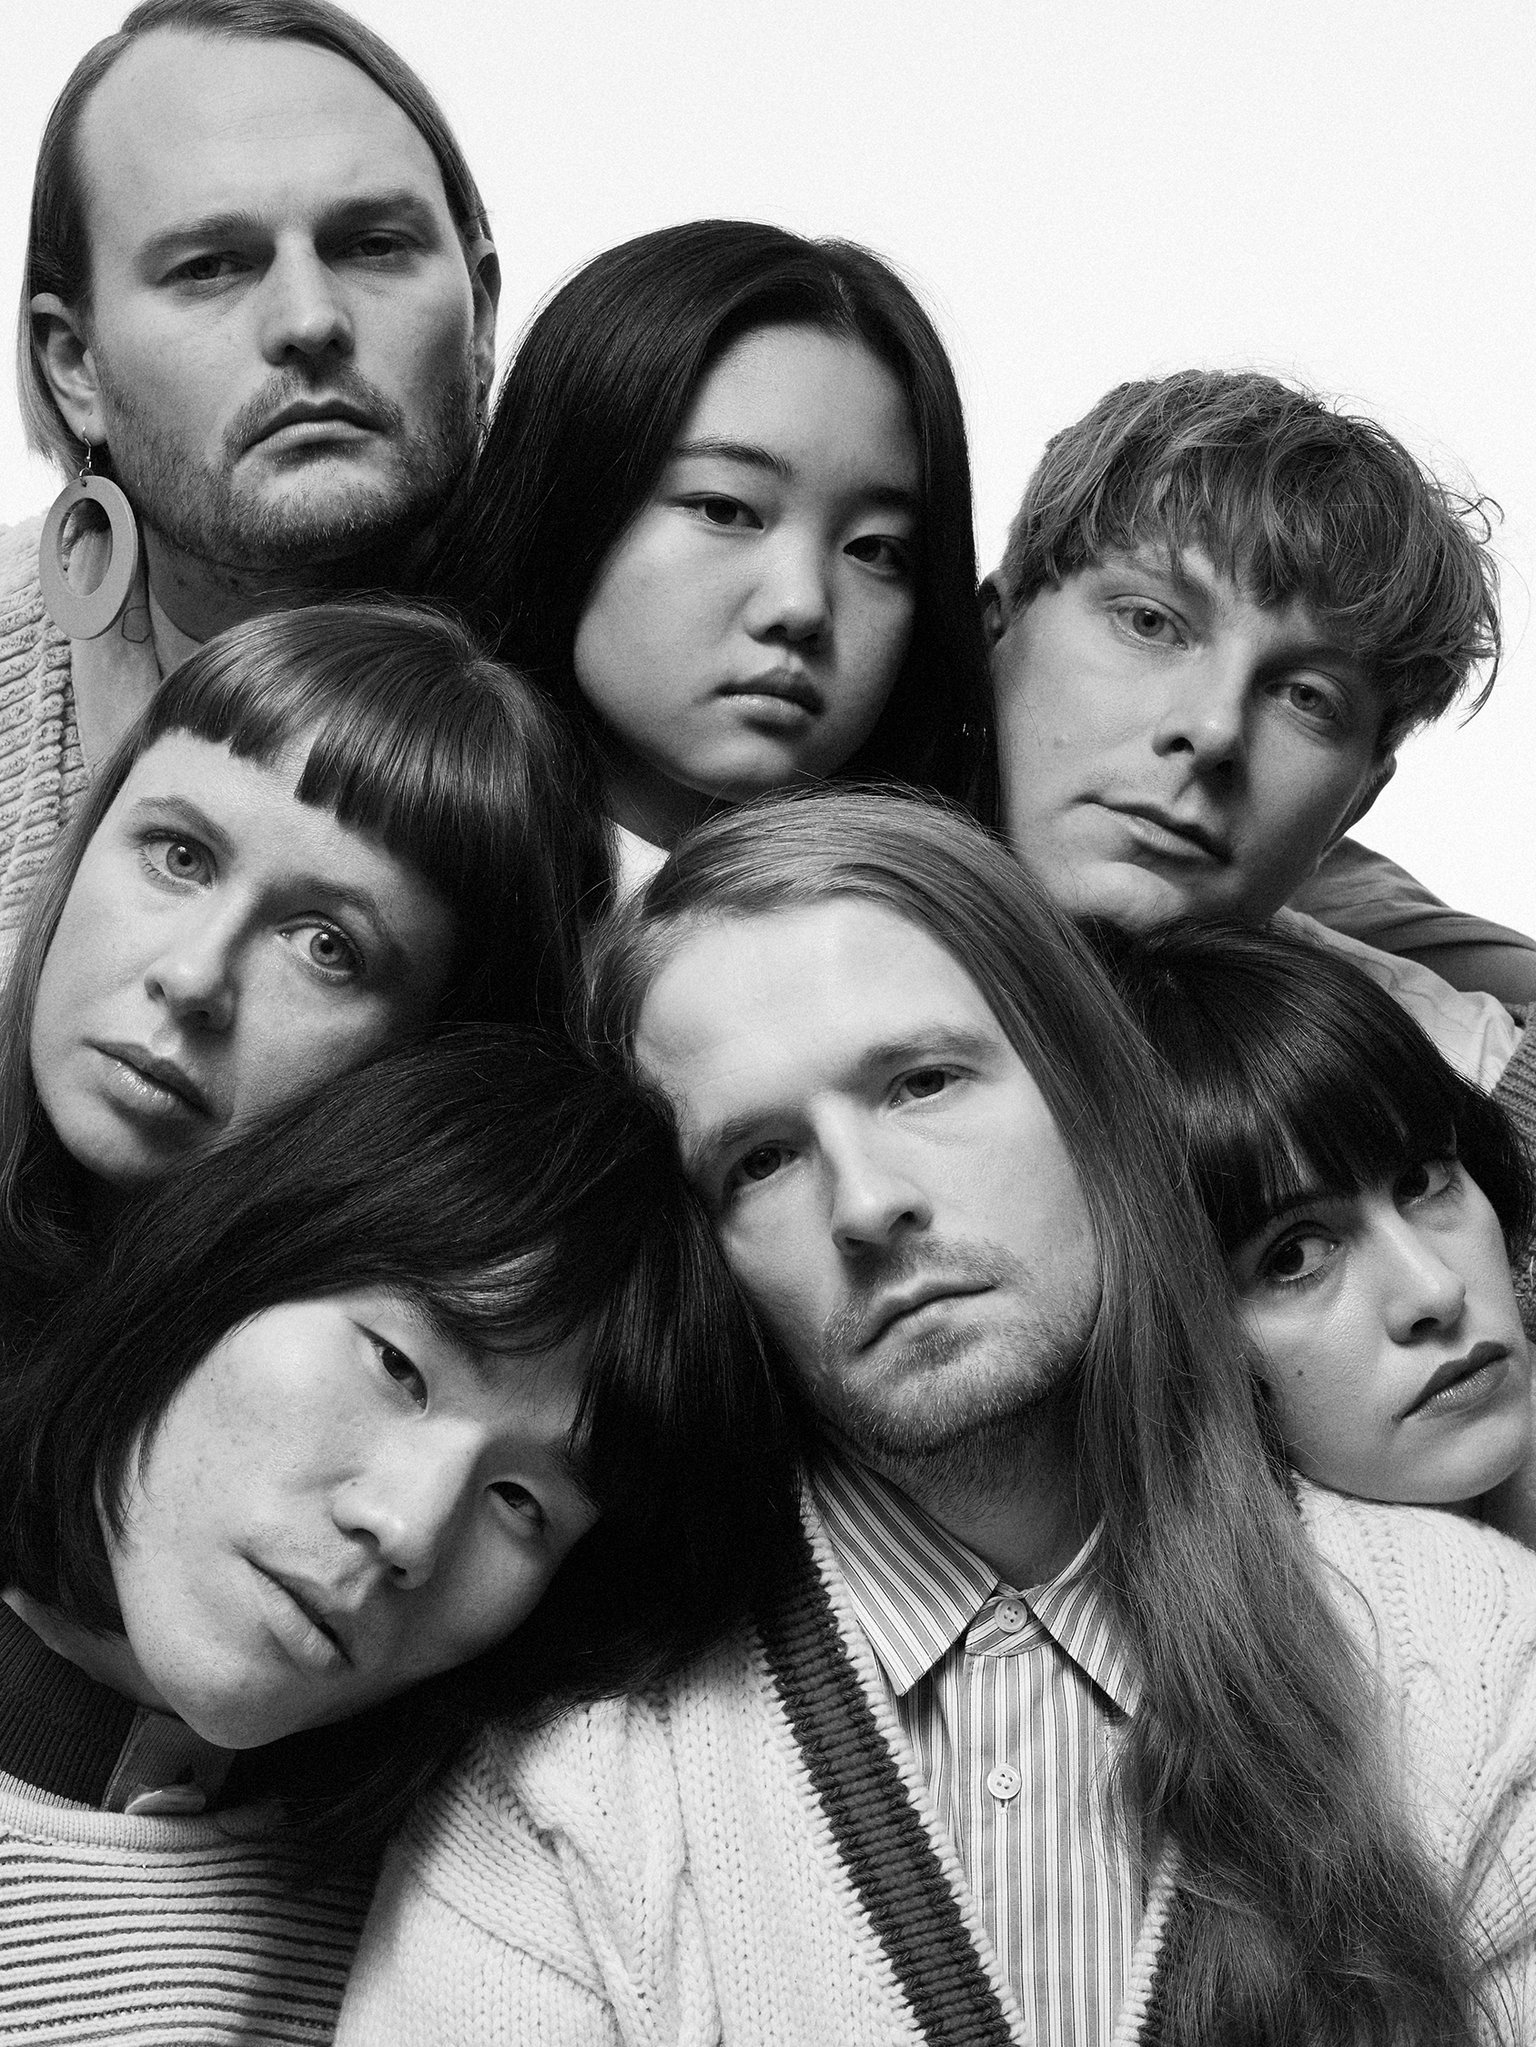 SUPERORGANISM_INTERVIEW_MH_01_WEB.jpg